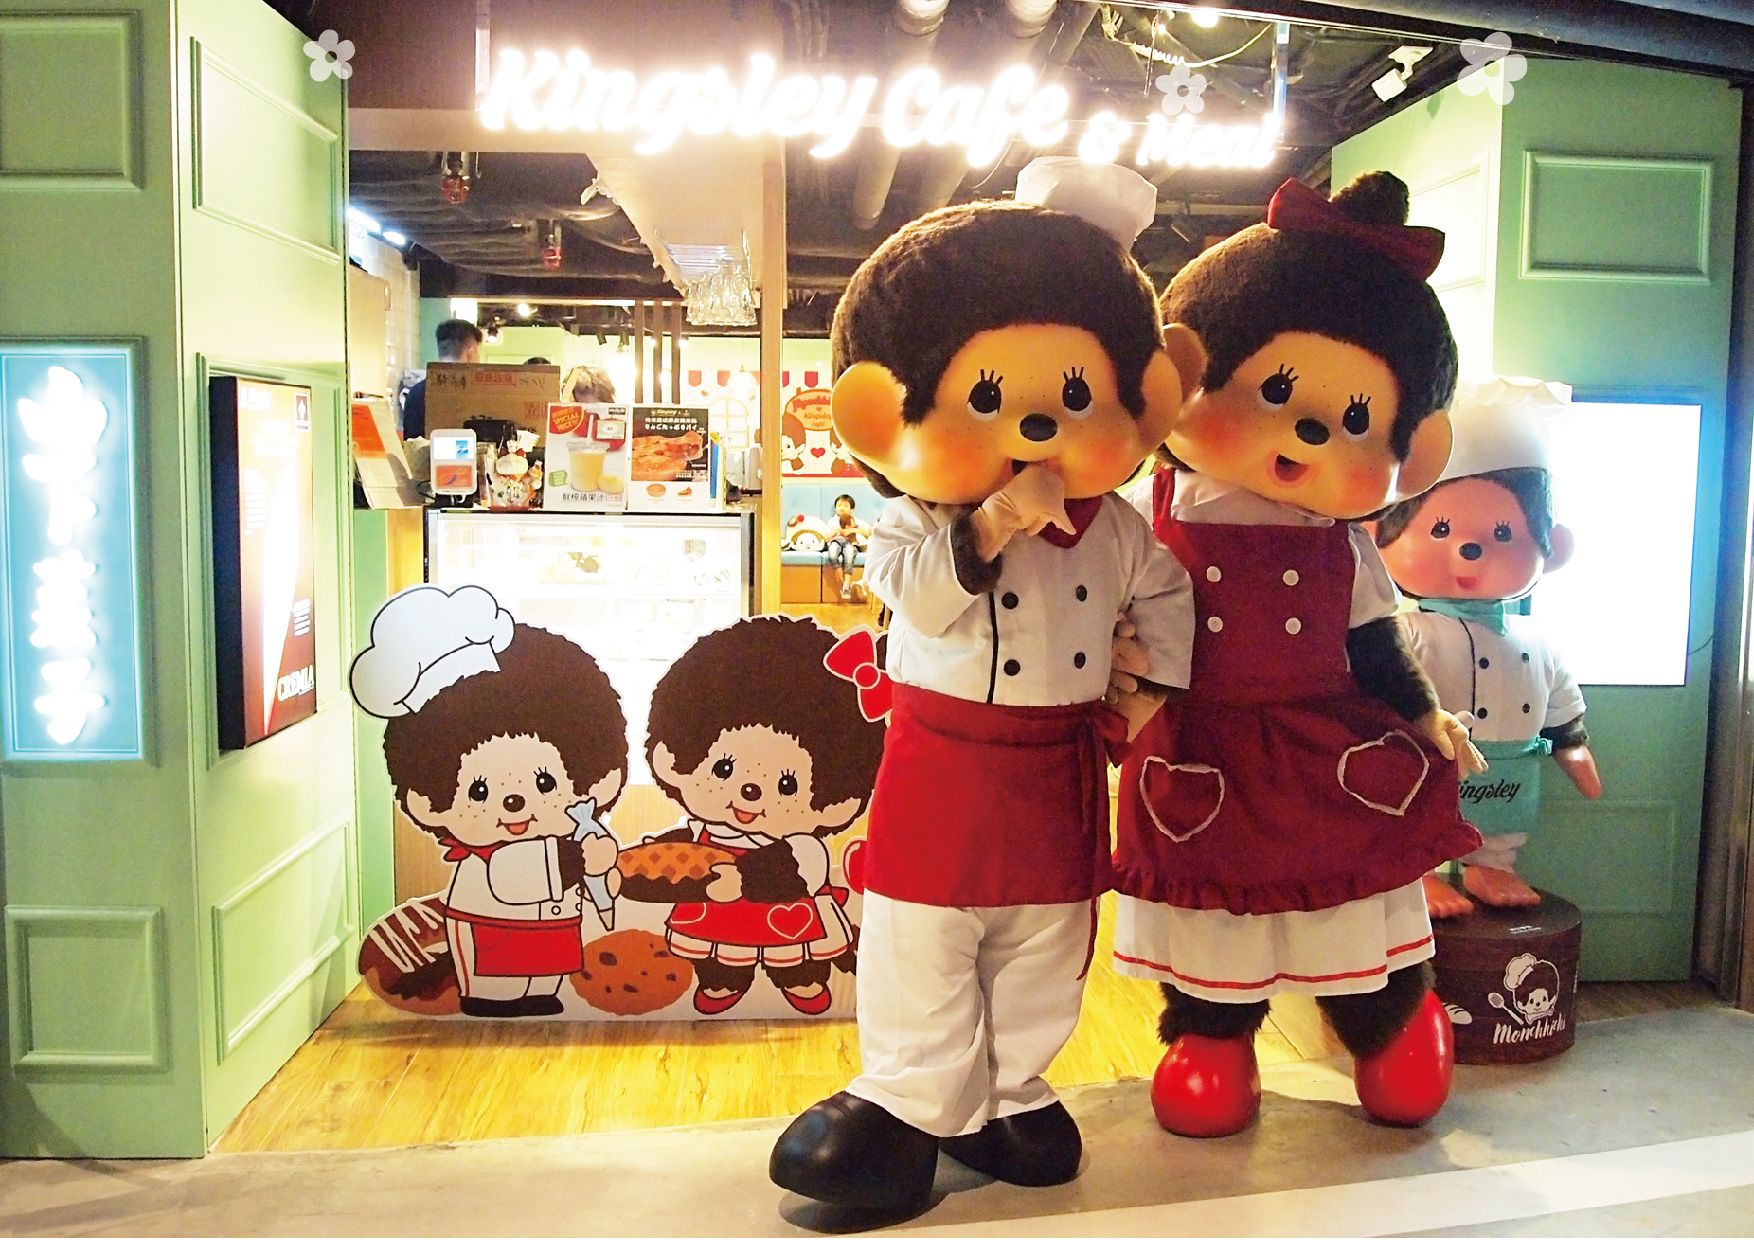 http://www.monchhichi.co.jp/files/news/GLOBAL/HK/facebook-MCC%20x%20Kingsley_poster_20180726_02.jpg